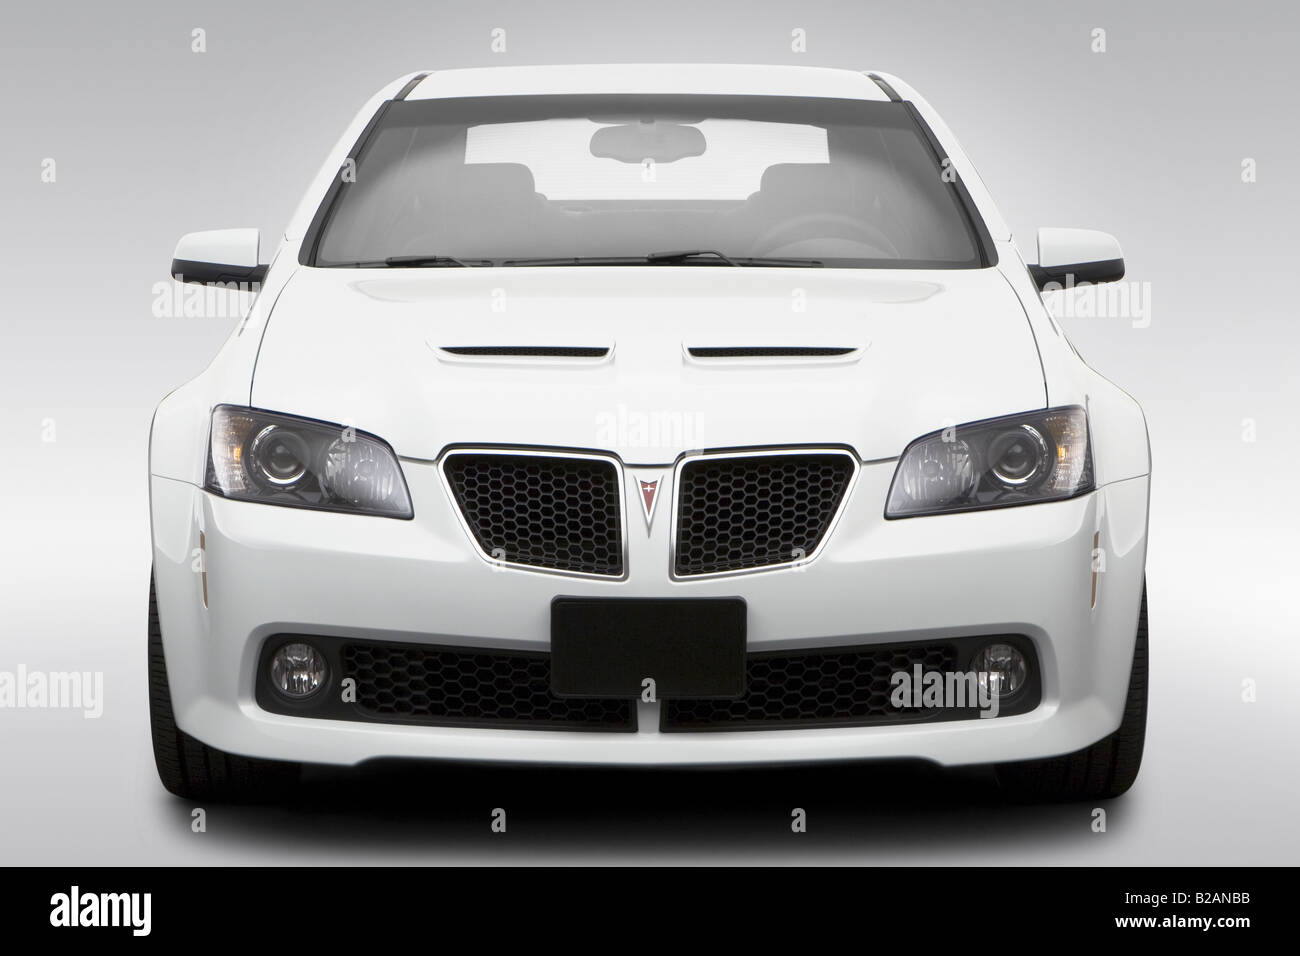 2008 Pontiac G8 Gt In White Low Wide Front Stock Photo Alamy